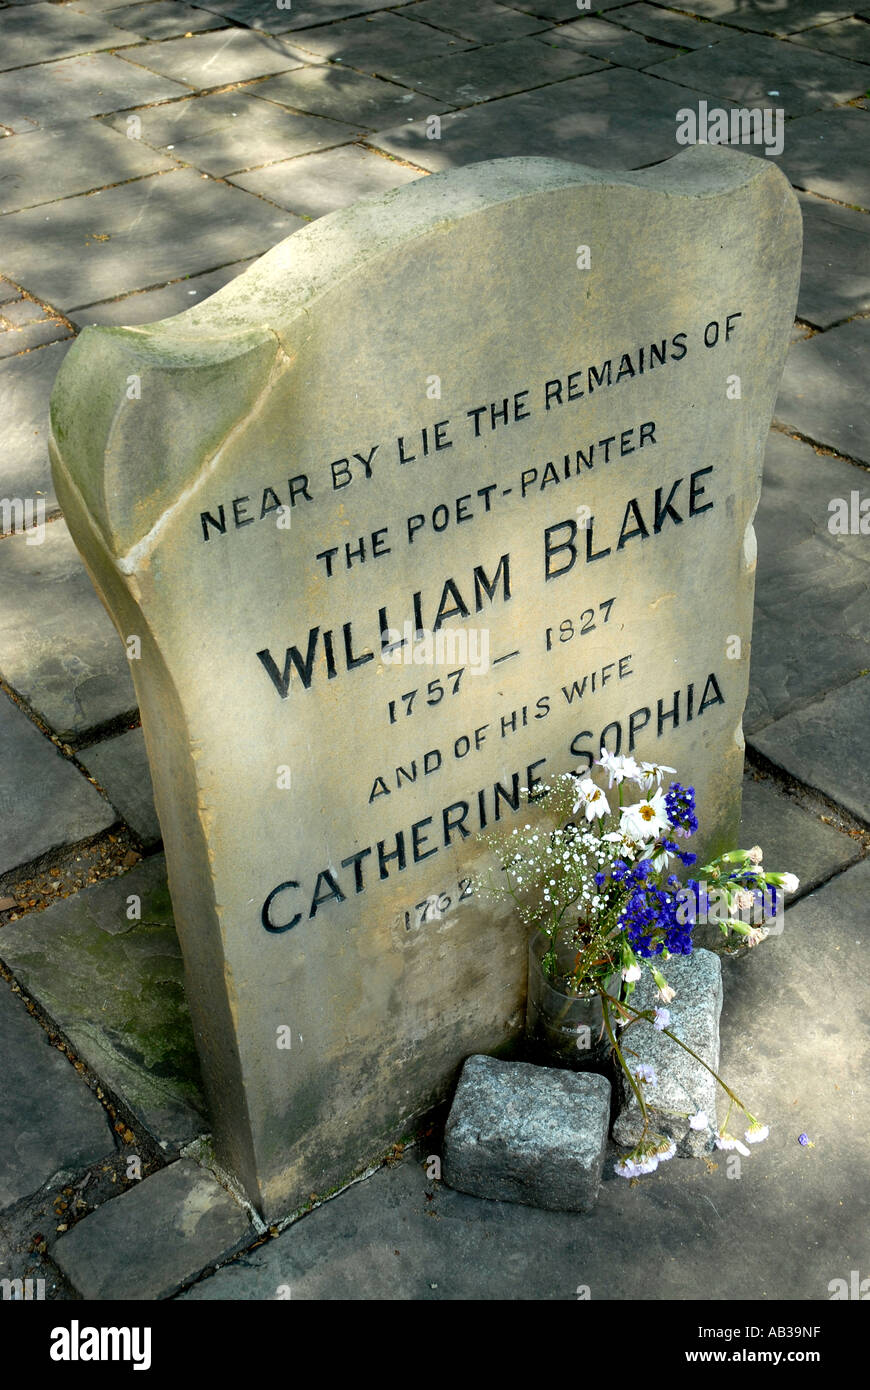 William Blake gravestone in Bunhill Fields Cemetery London Borough of Islington - Stock Image